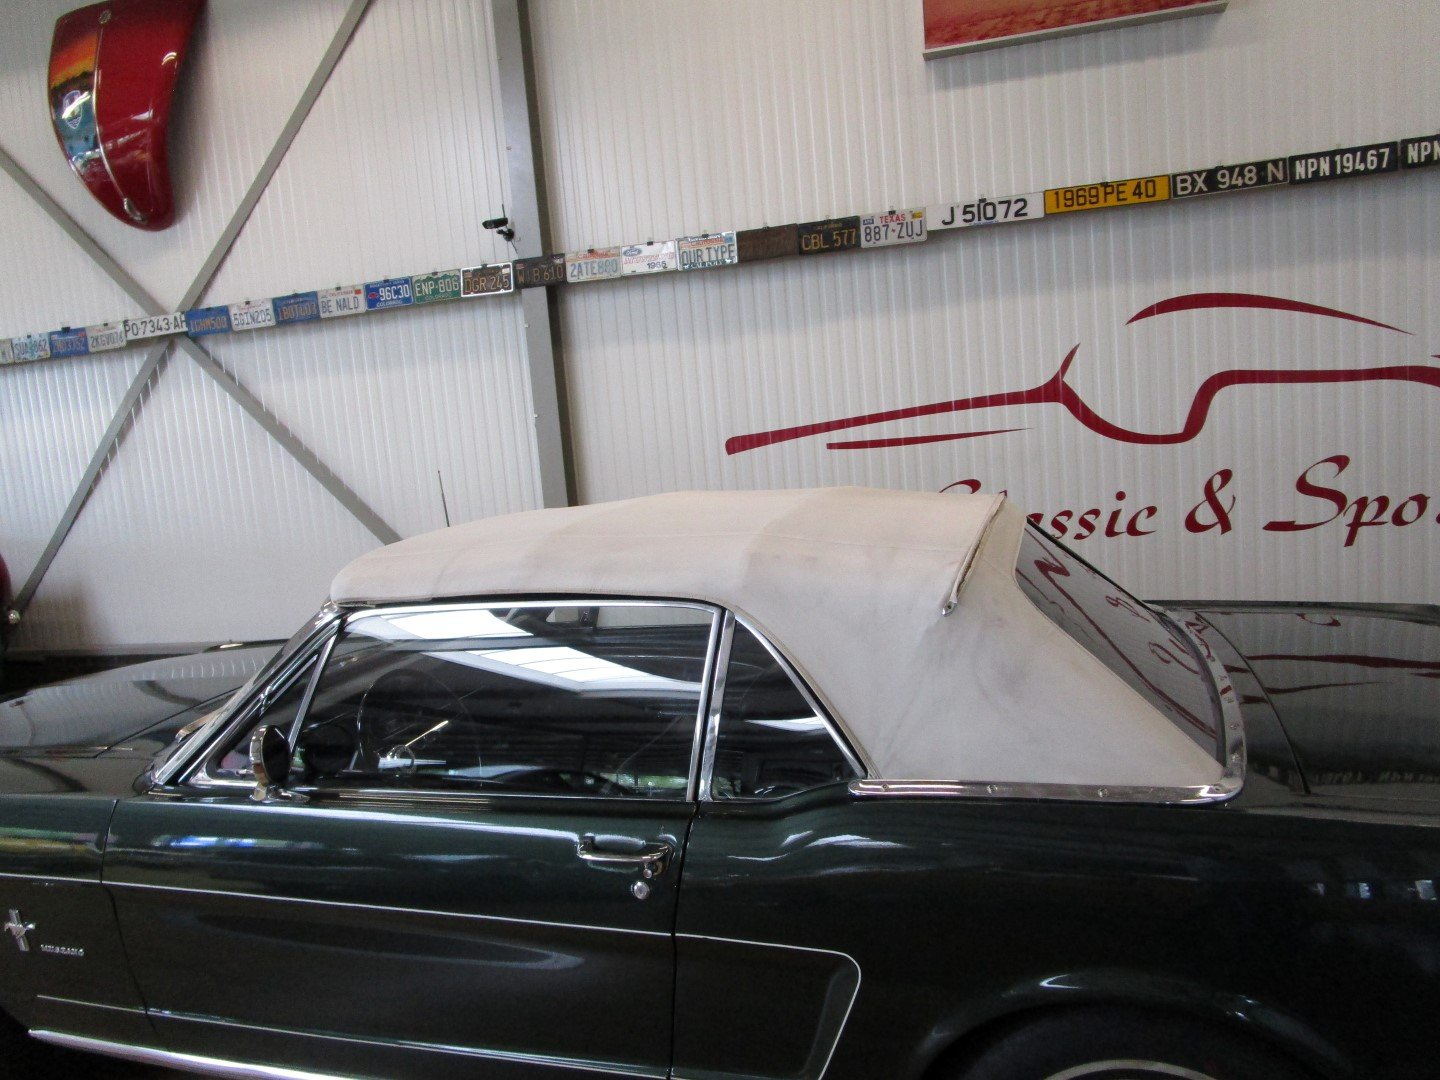 1966 Ford Mustang 289 V8 Cabrio 4 Speed Manual Second owner For Sale (picture 5 of 6)